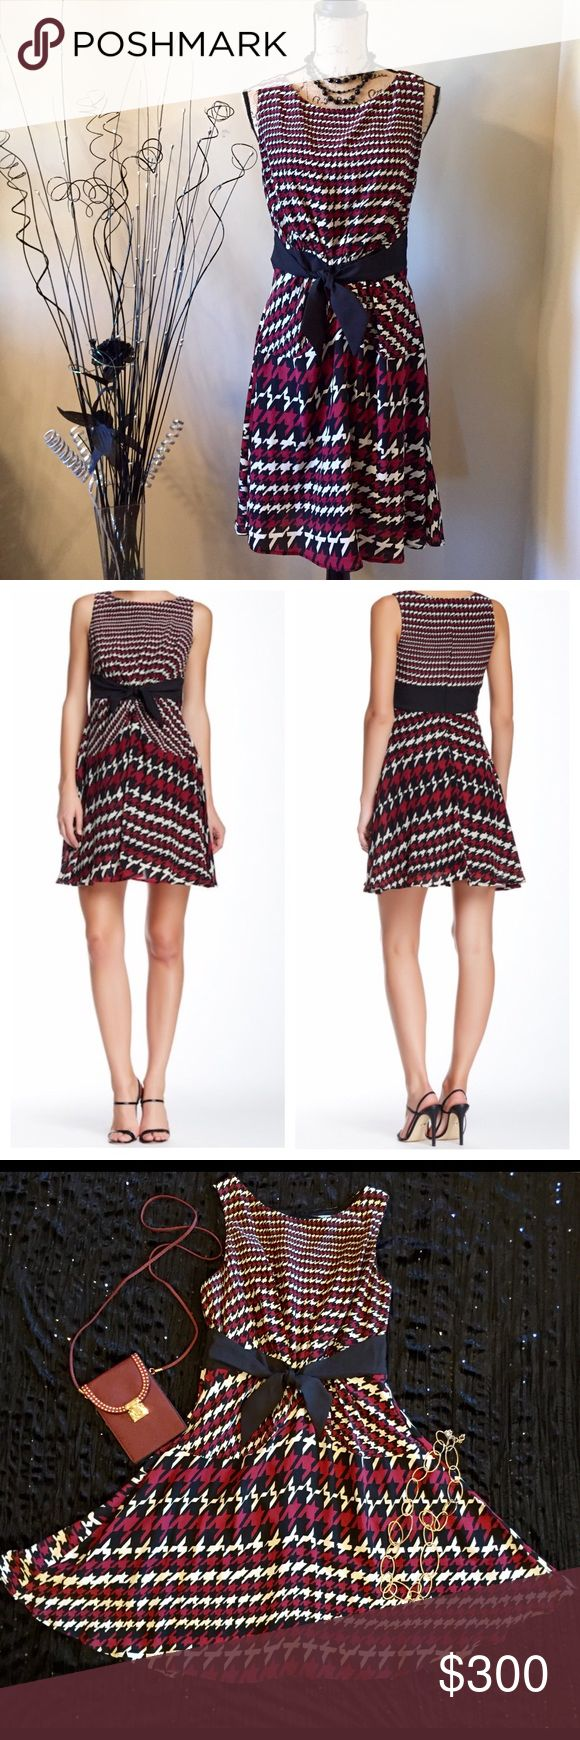 "⬇️💰EVA FRANCO Sleeveless Houndstooth Dress EUC EVA FRANCO Deni Fit & Flare Sleeveless Houndstooth Dress Excellent Pre-Owned Condition; No Stains, Rips Or Piling  MSRP: $495.00  Size: 10 Black, Crimson, & White Houndstooth Print With Black Waist Tie So Chic & Classy! Wear Alone With Strappy Sandals Or Add A Jacket/Blazer For A Professional Office Look. Crew Neck, Fully Lined, Hidden Back Zip Closure  Measurements Without Stretching: Armpit To Armpit: 17"" Length: 38"" From Top Of Shoulder 100%…"